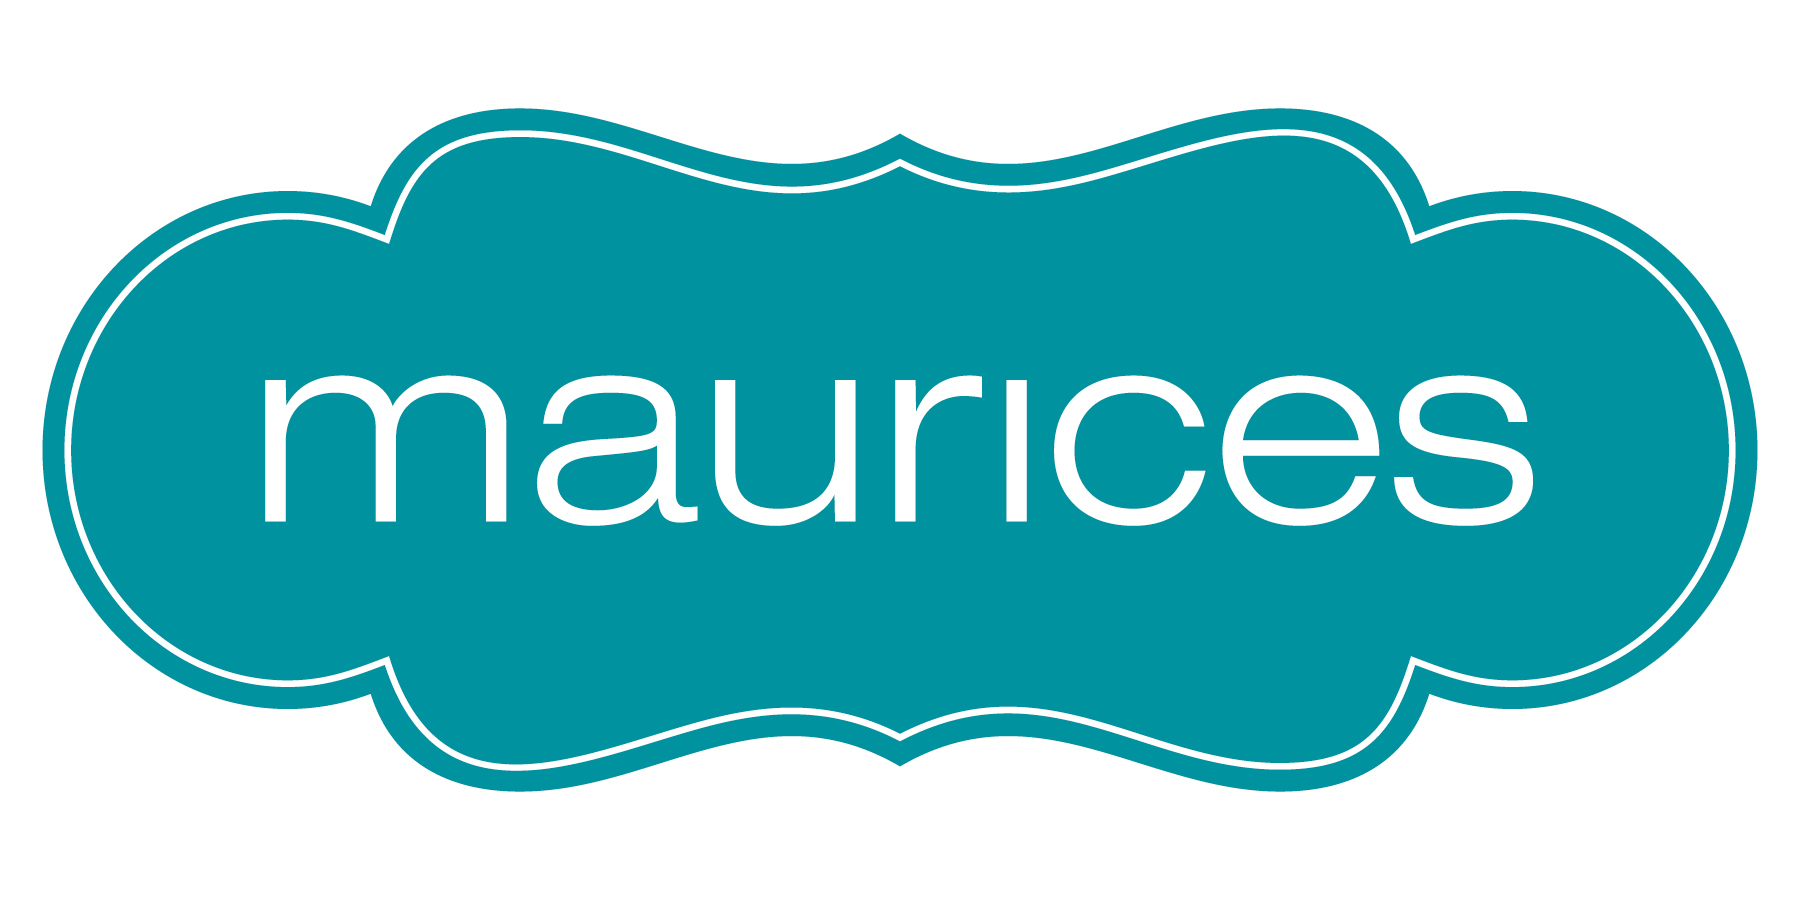 Maurices Online Survey to Win Gift Prizes